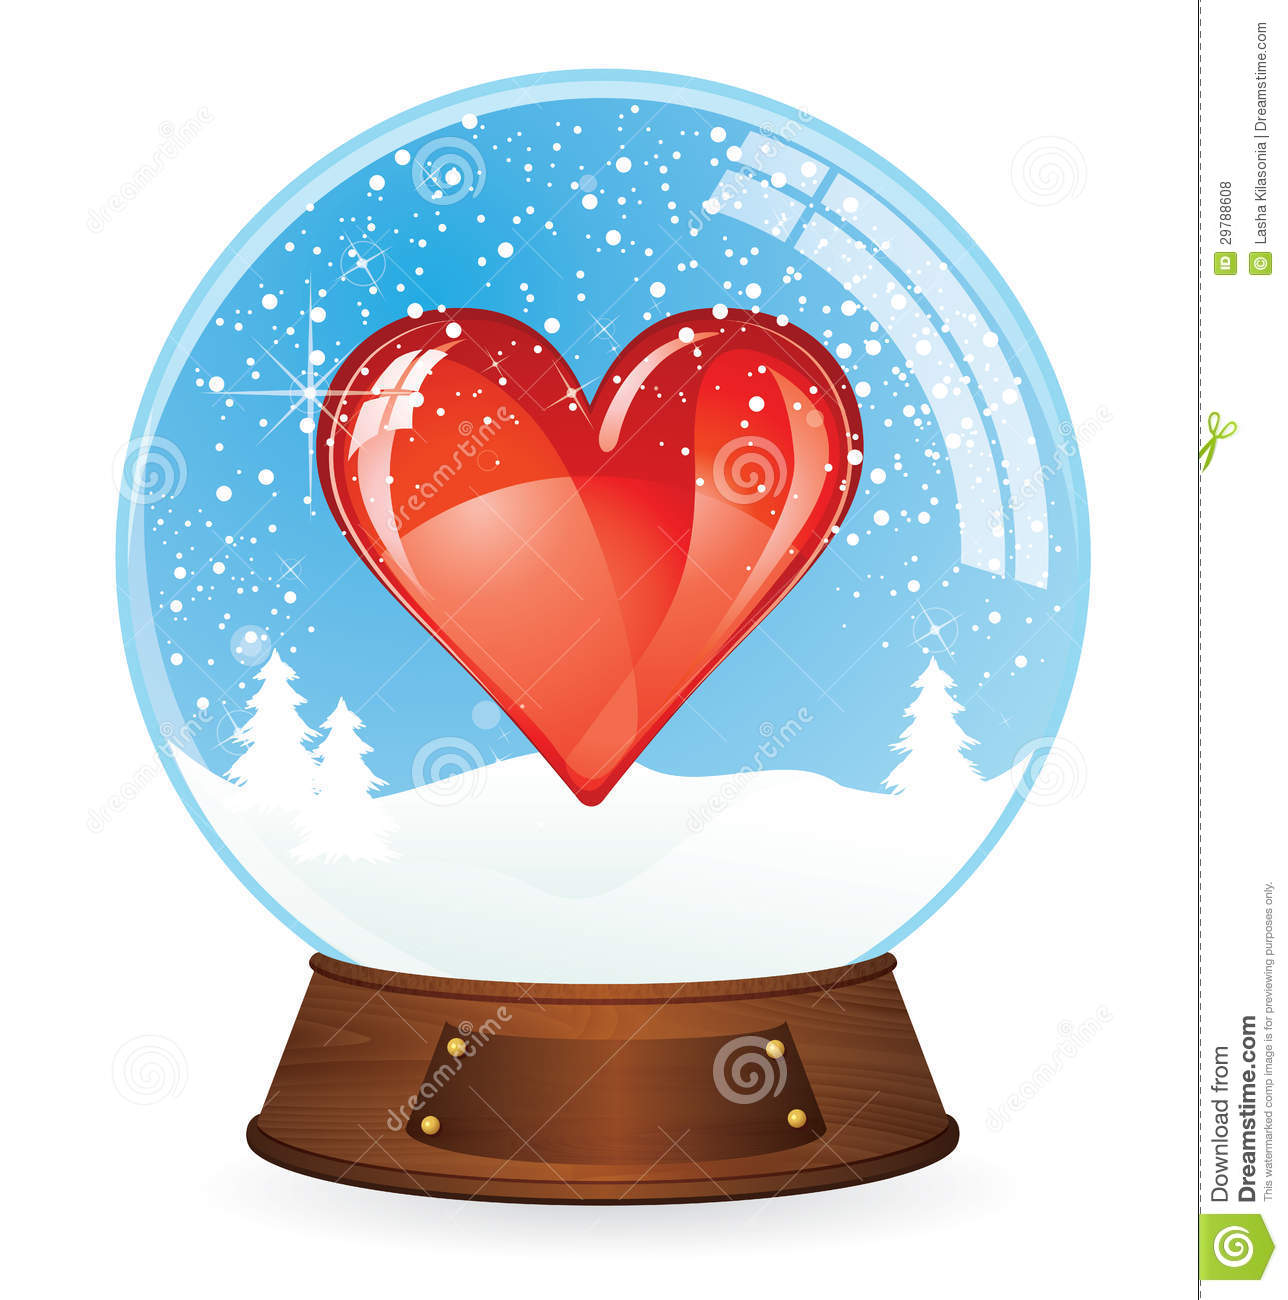 Heart In Snow Globe Royalty Free Stock Photos - Image: 29788608